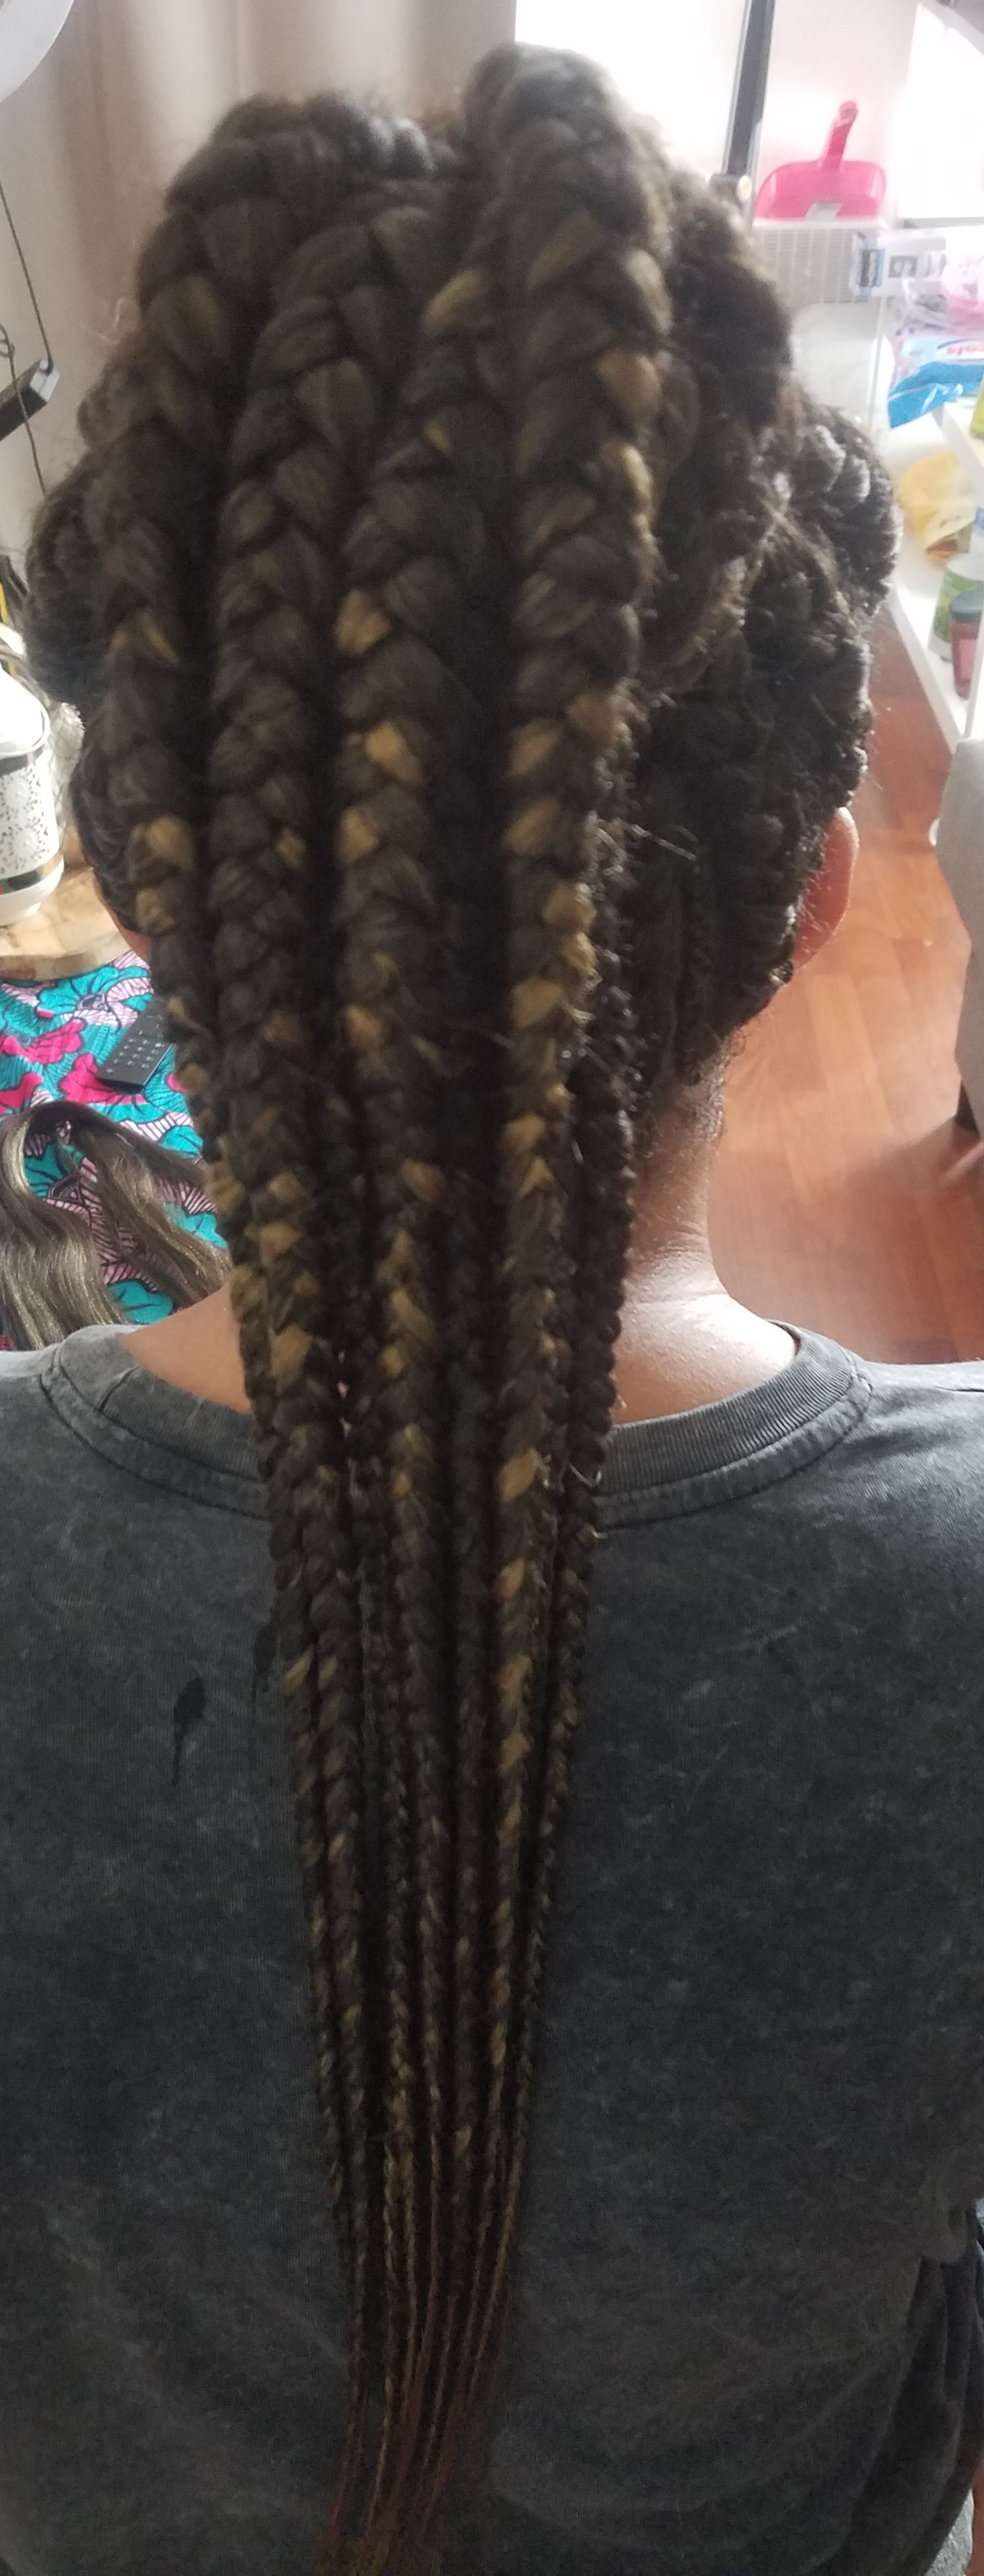 salon de coiffure afro tresse tresses box braids crochet braids vanilles tissages paris 75 77 78 91 92 93 94 95 TZULCJZN